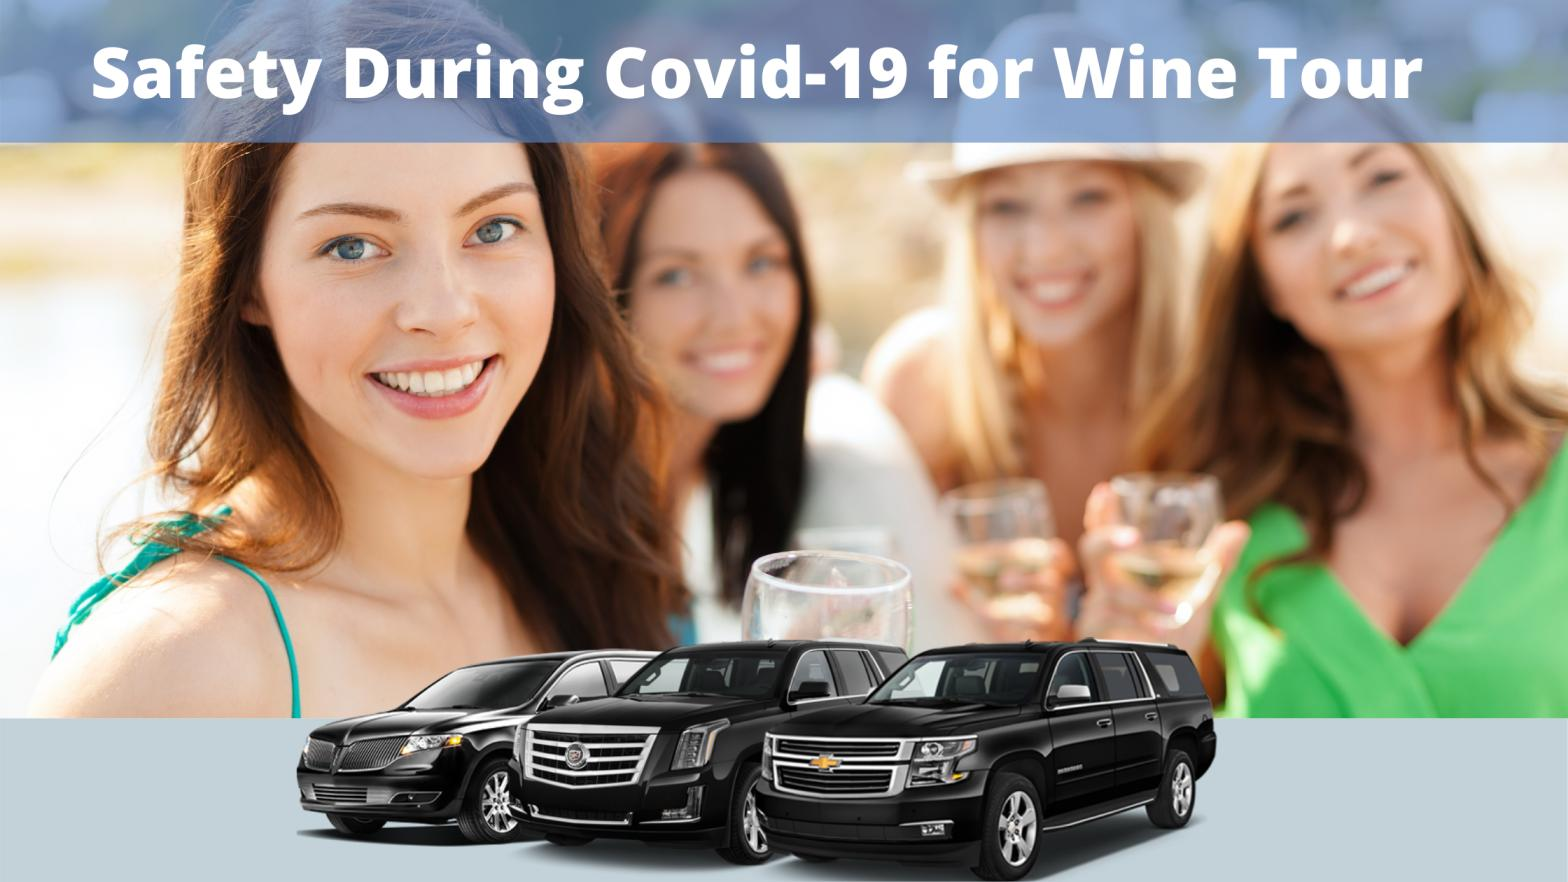 Safety During Covid-19 for Wine Tour